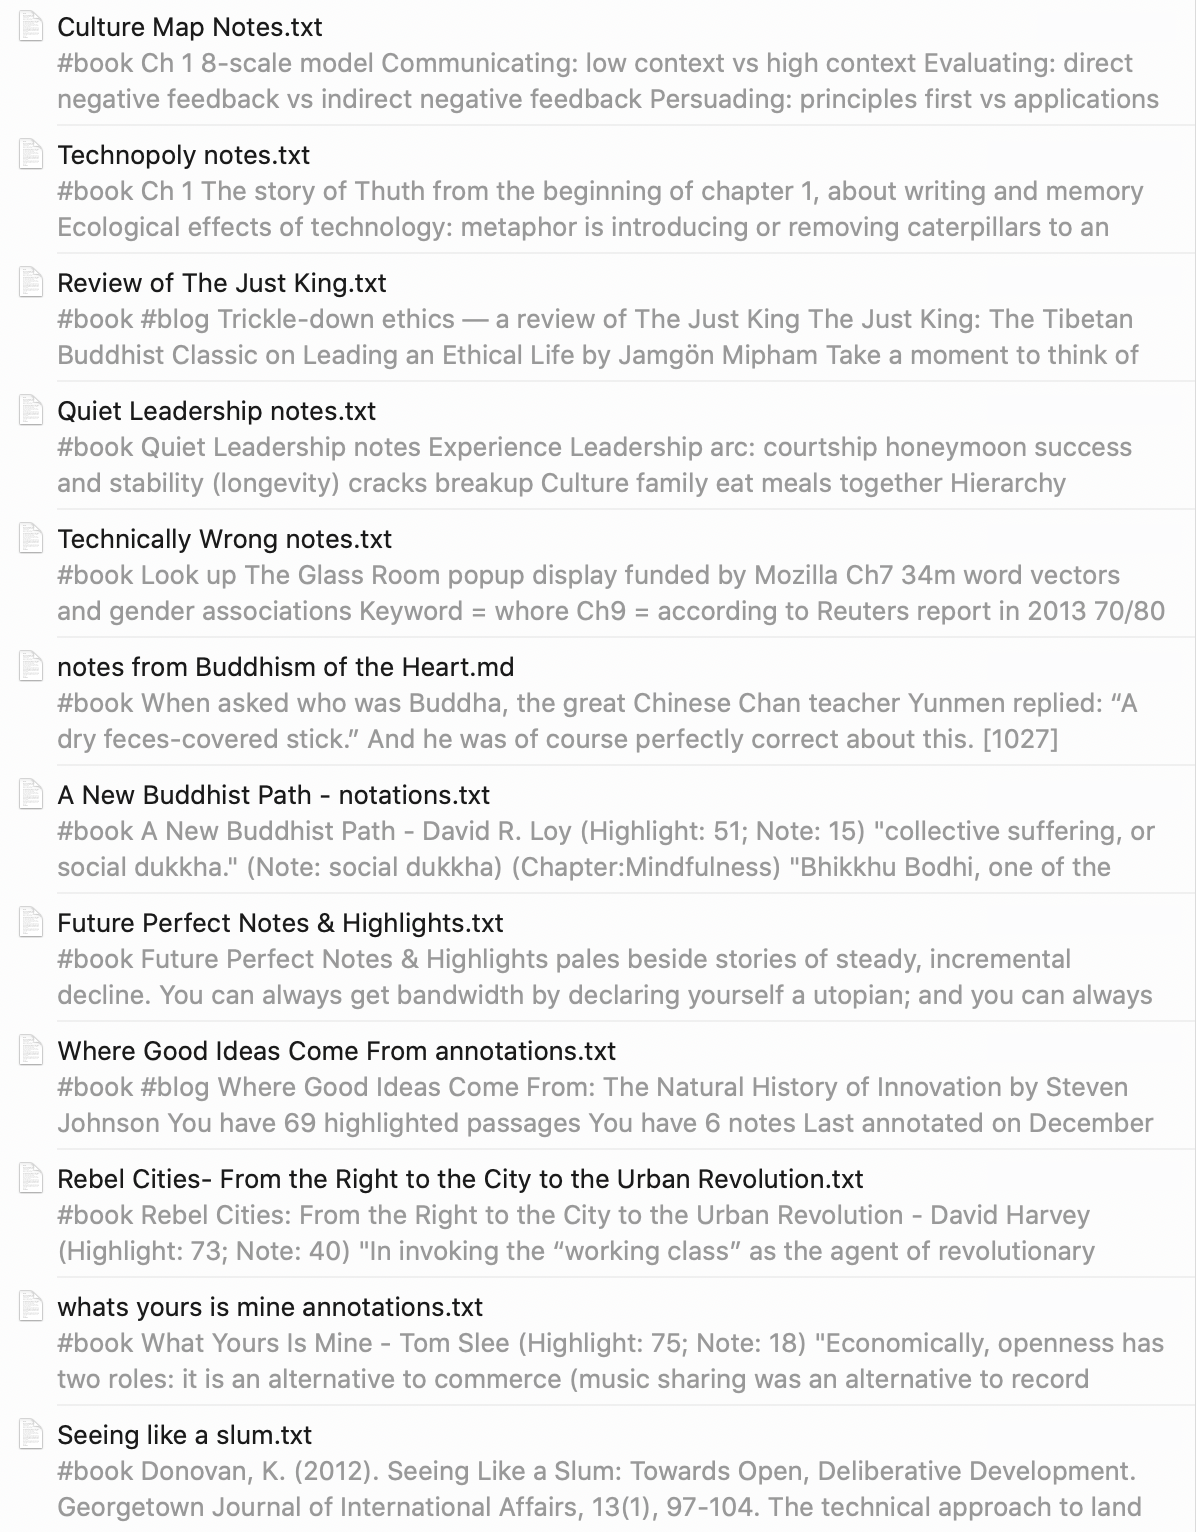 Screencap of book notes. Most are just exports of the annotations from Kindle.